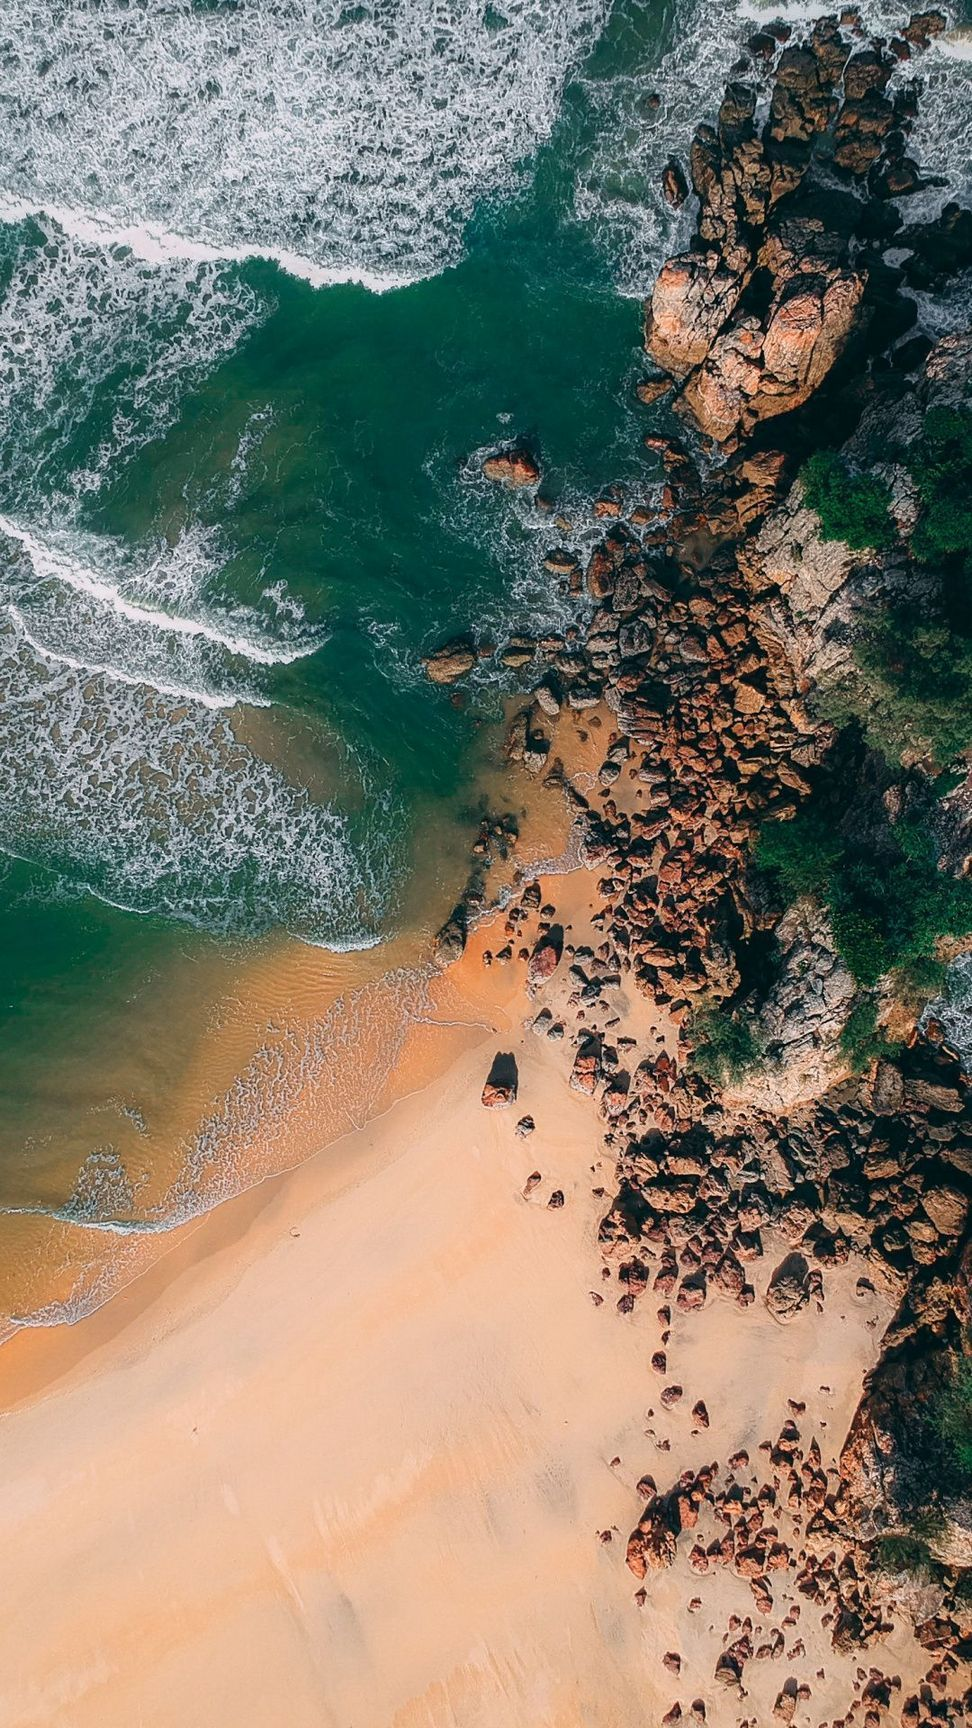 Pin On Photography Drone Camera Aerial View